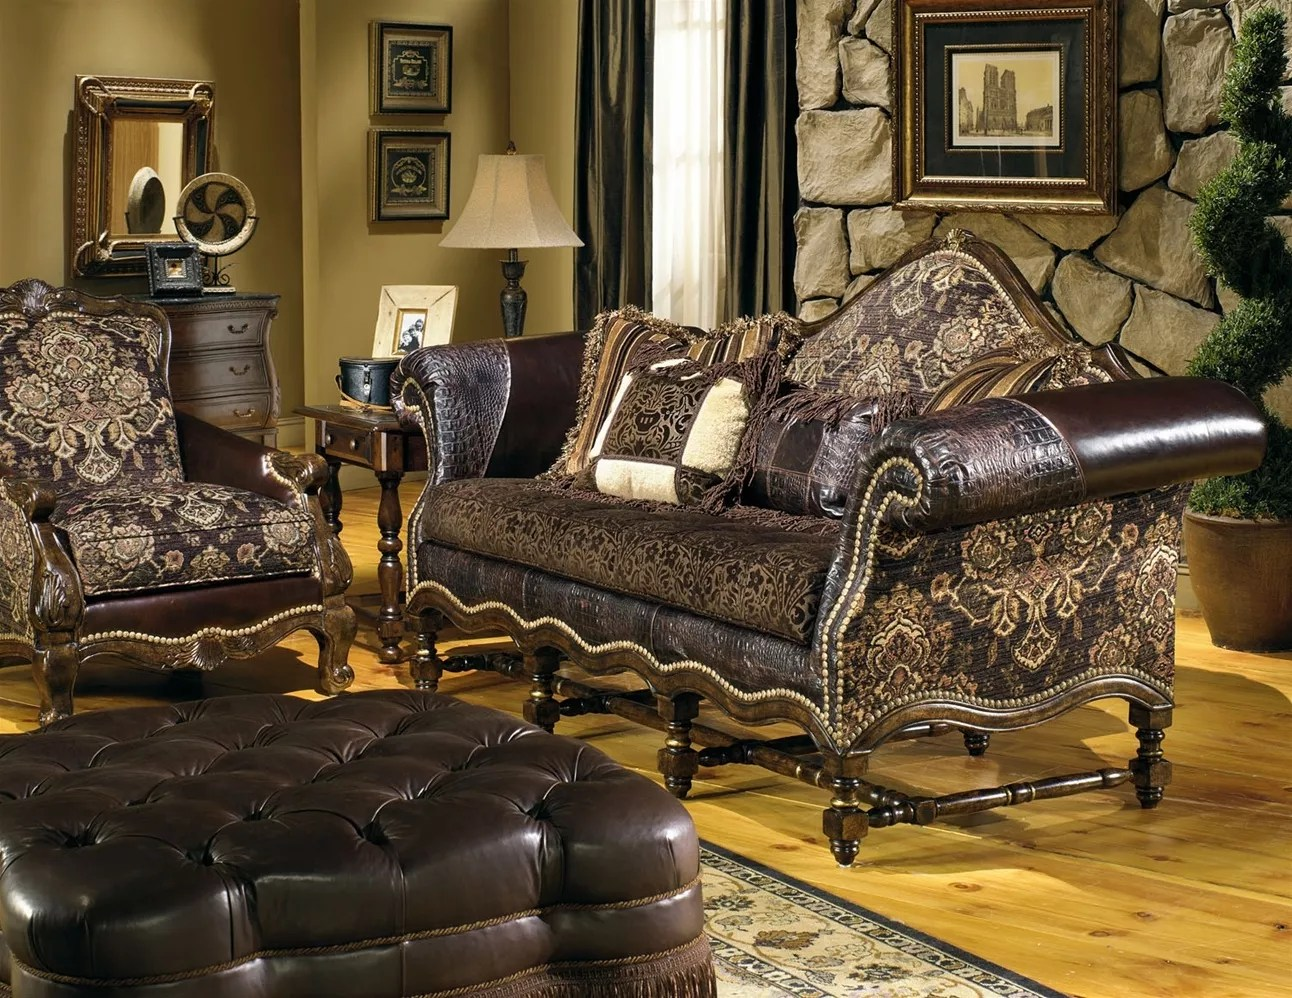 southwestern sofas sofa cama chaise longue el corte ingles chair and ottoman tan patterned oh